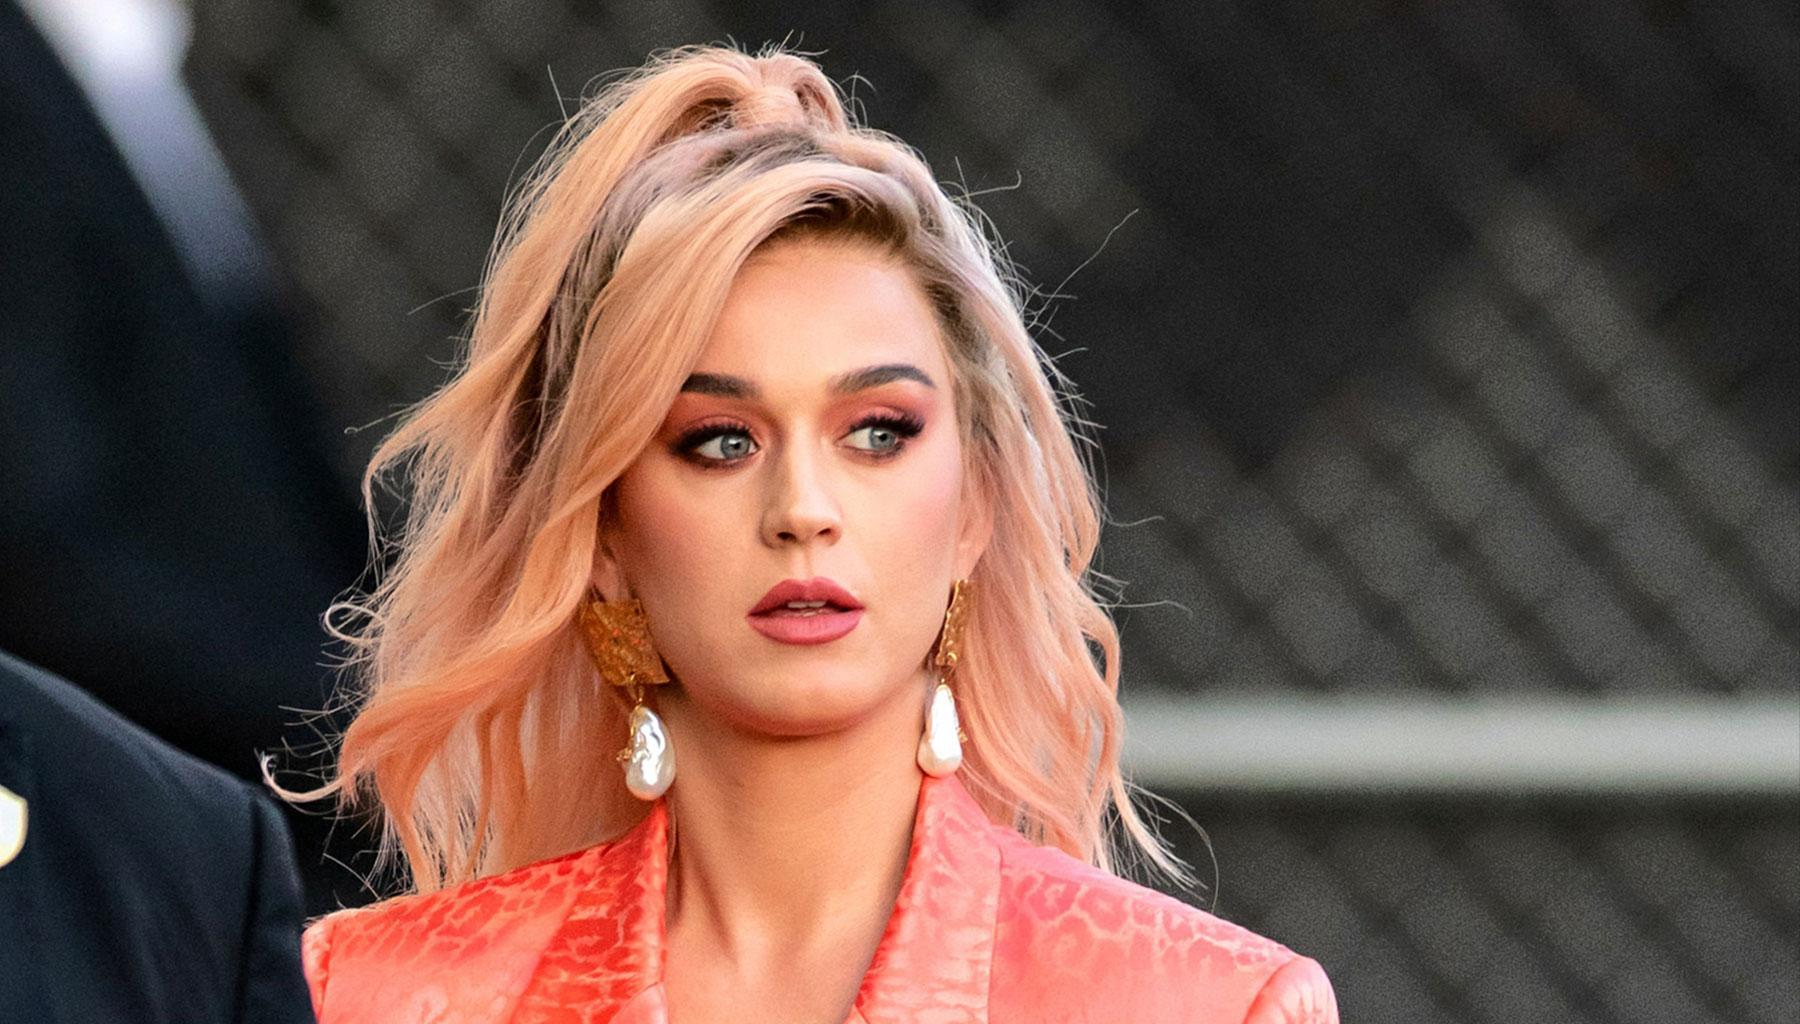 Katy Perry And Her Baby Bump Look Super Cute In Bunny Costume - Check Out The Festive Easter Look!